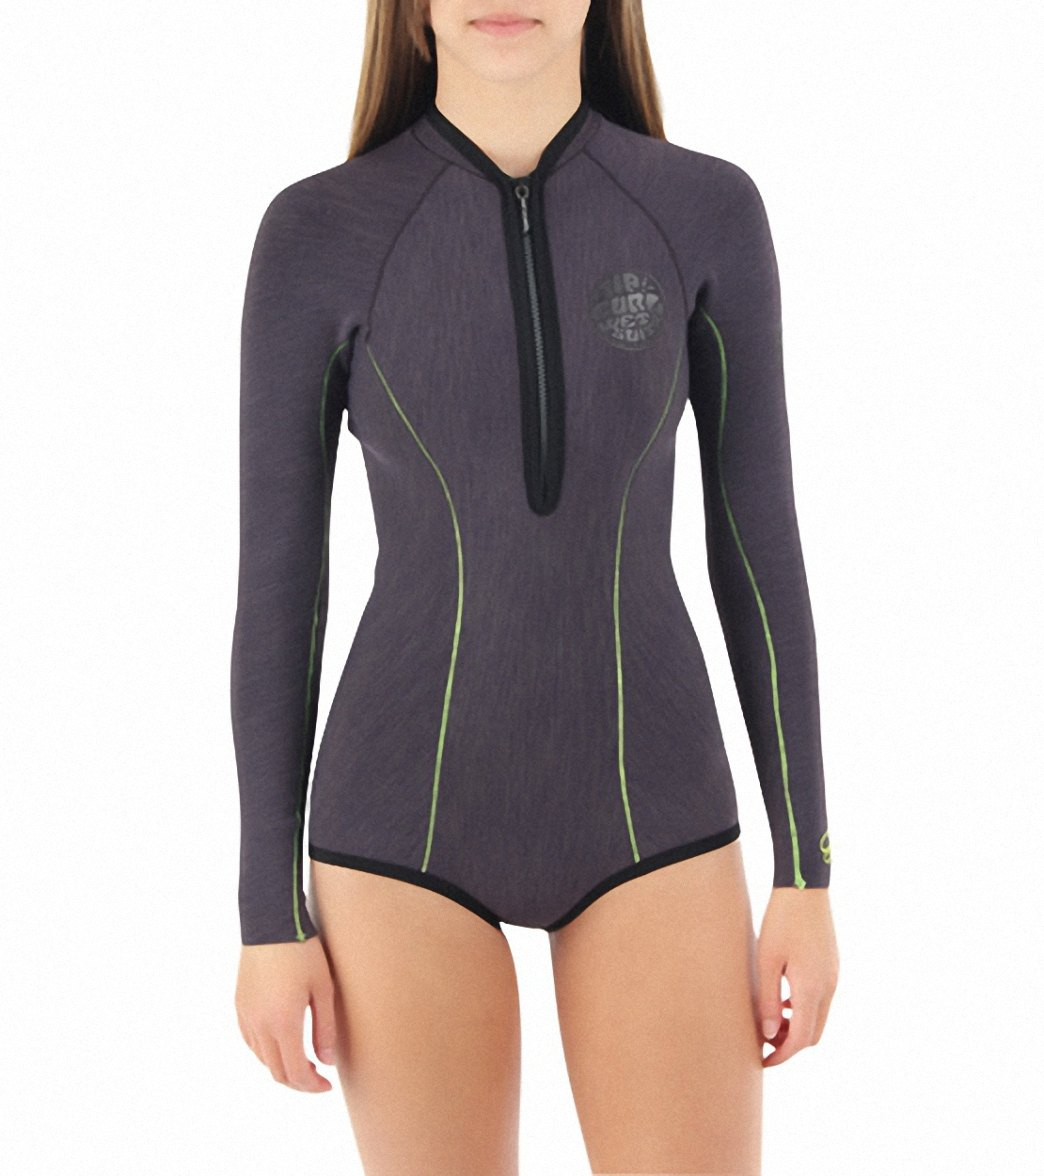 bb9b61b04d64 Rip Curl Women s G-Bomb L S Booty Springsuit at SwimOutlet.com ...